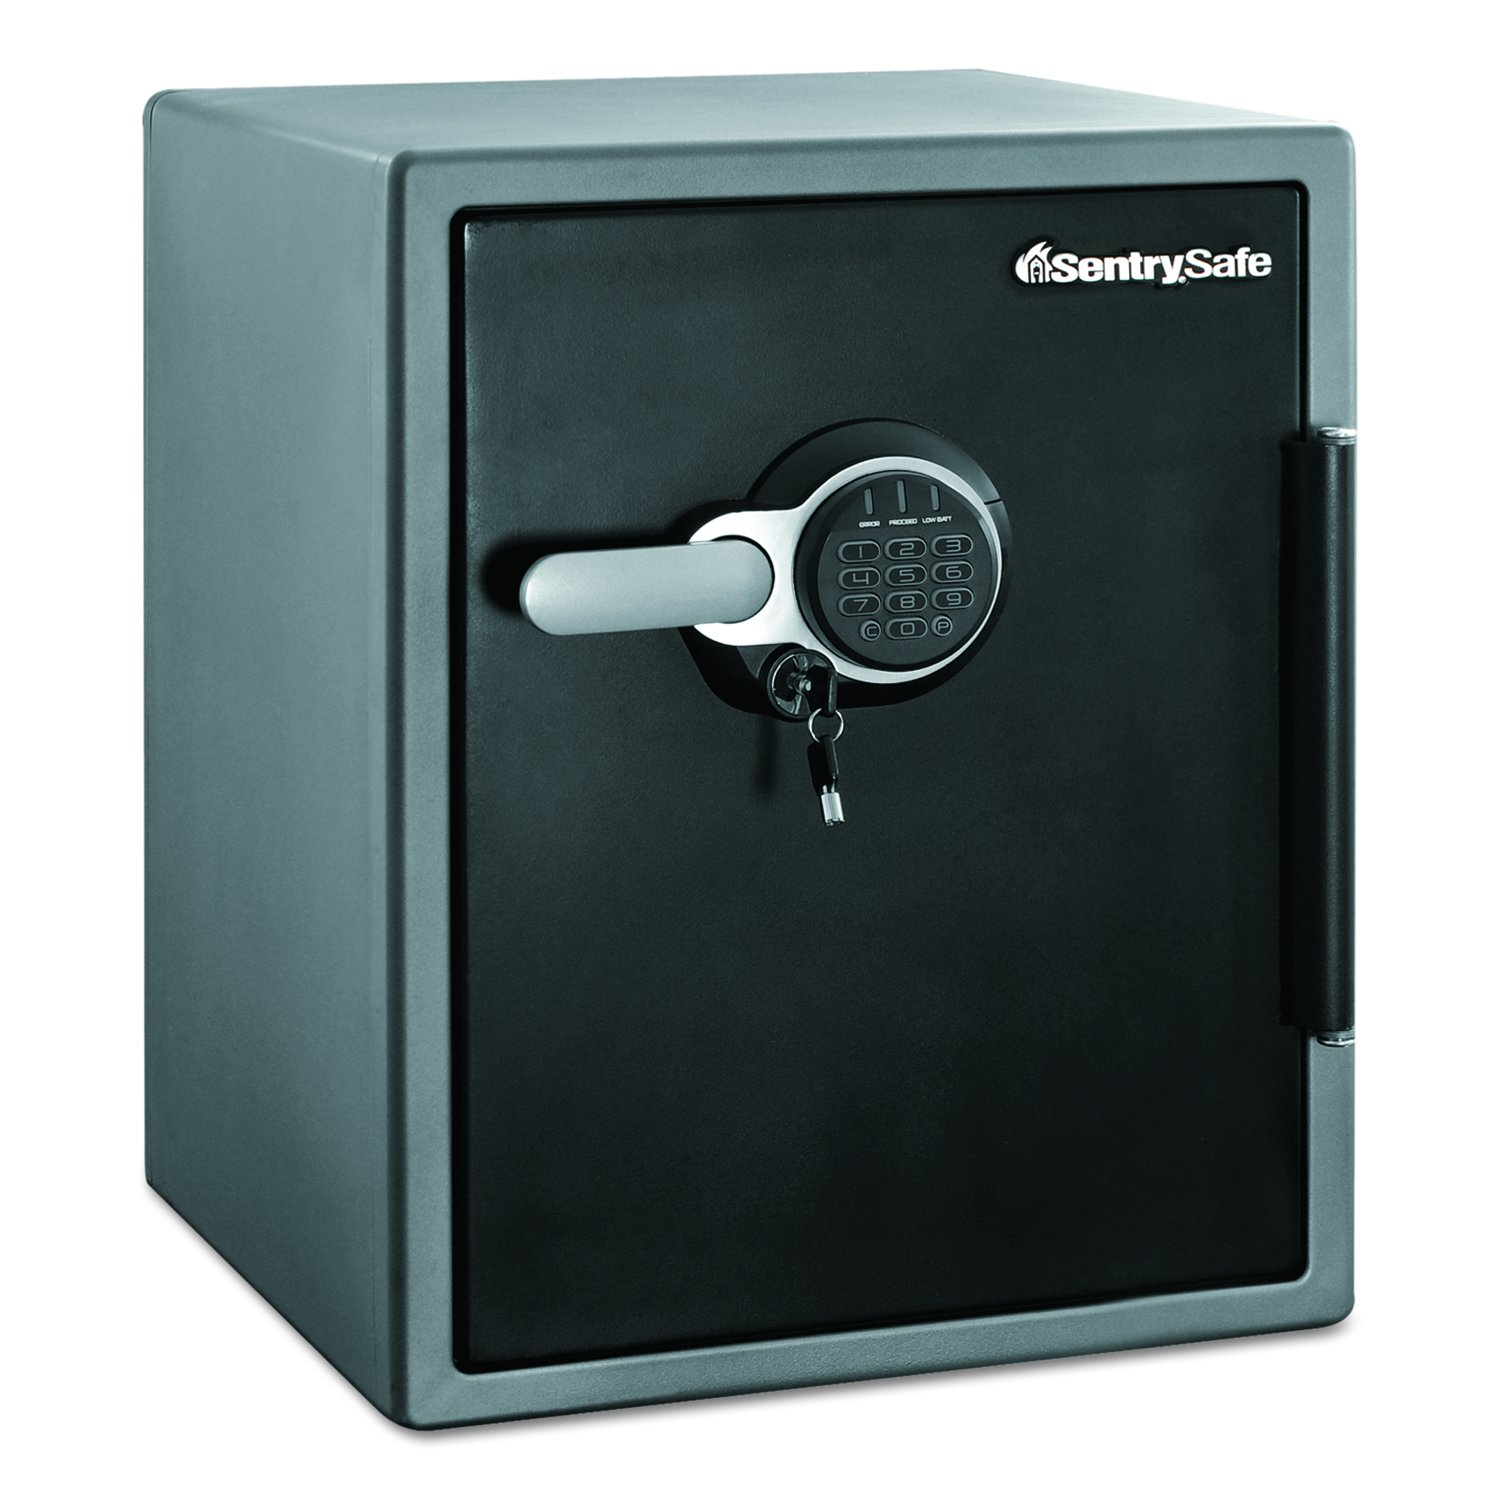 SentrySafe Sentry Safe Lock Boxes (SFW205GRC) fire chests,safes by SentrySafe (Image #3)